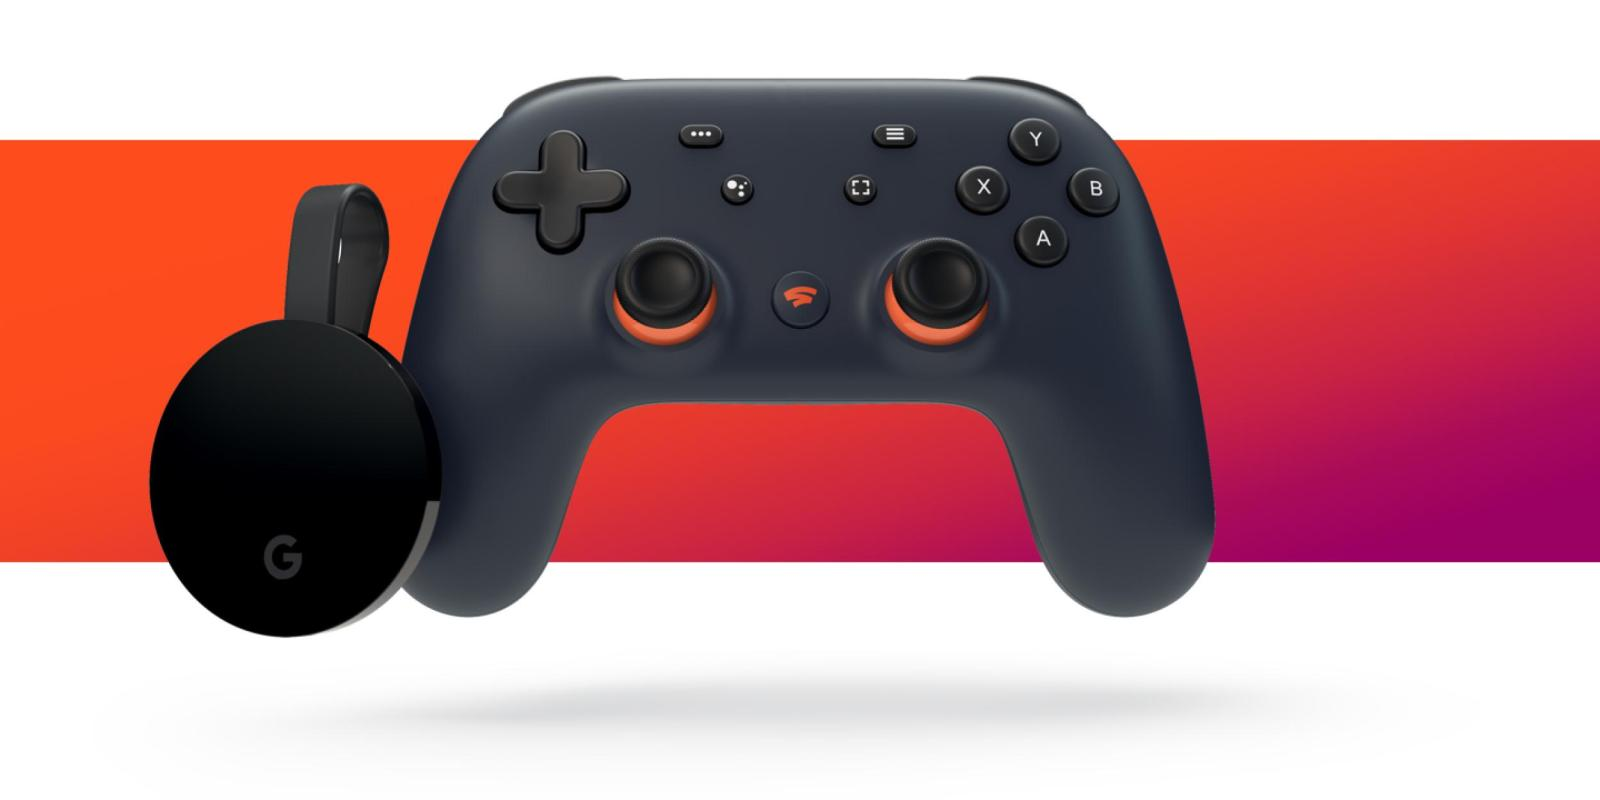 Google Stadia launches with users largely unable to play